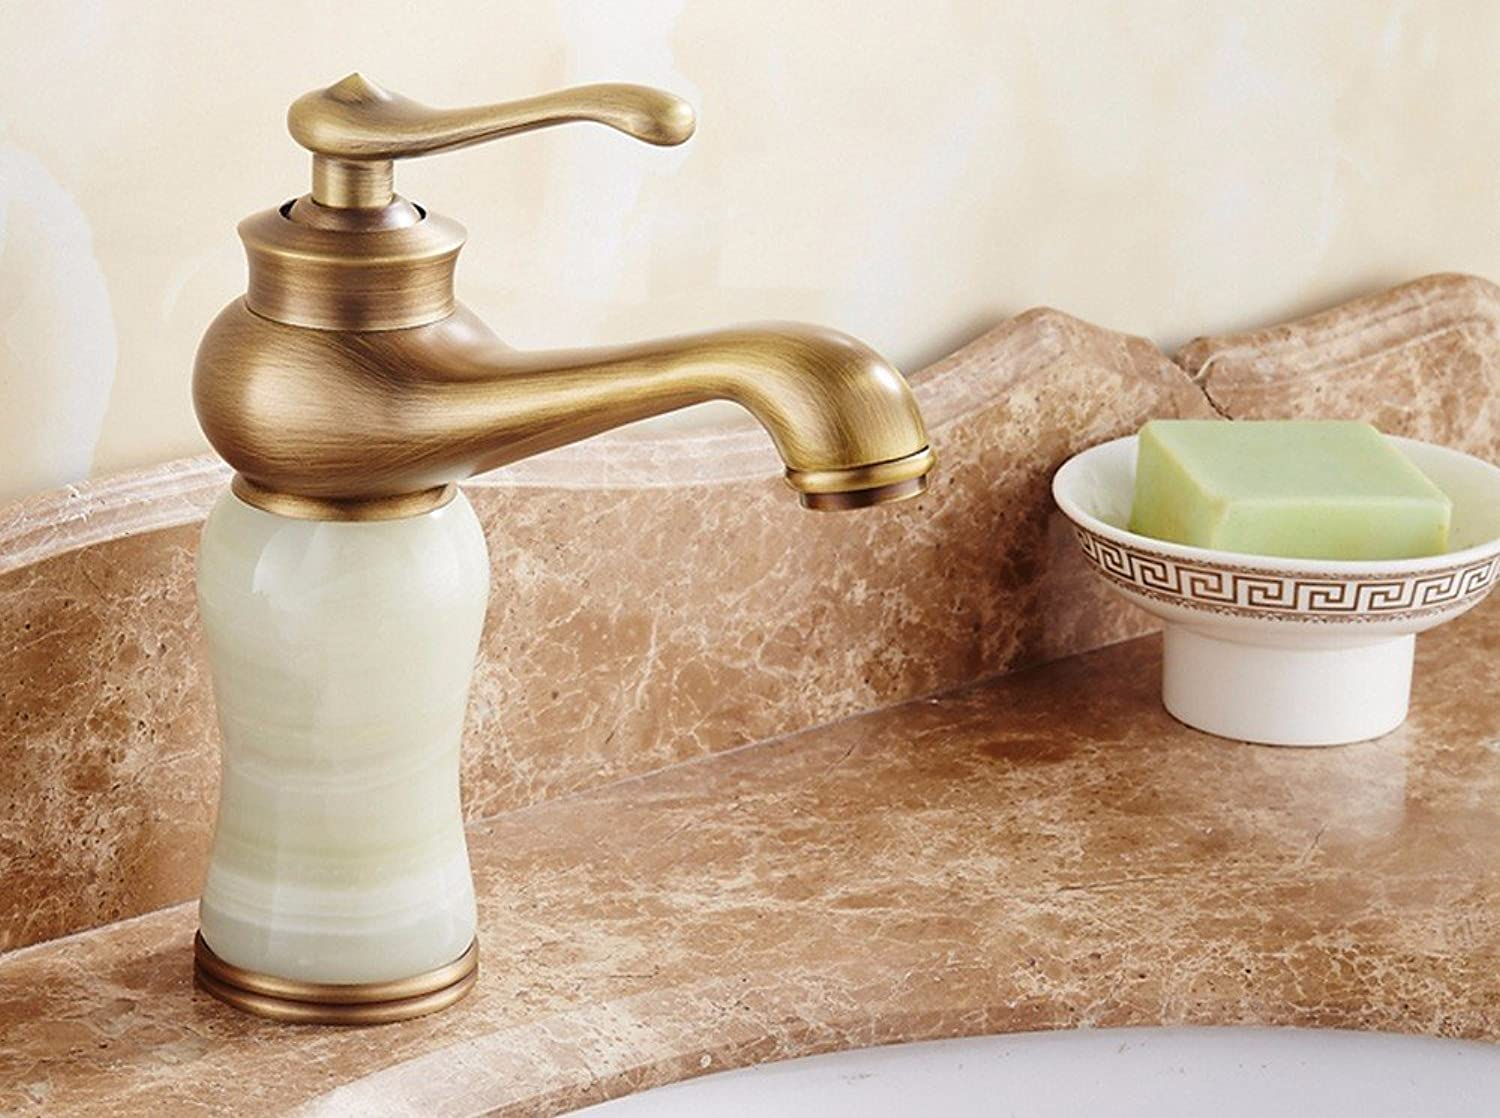 Hlluya Professional Sink Mixer Tap Kitchen Faucet Cold and hot, single handle single hole, jade, a vanity area with sink and faucet